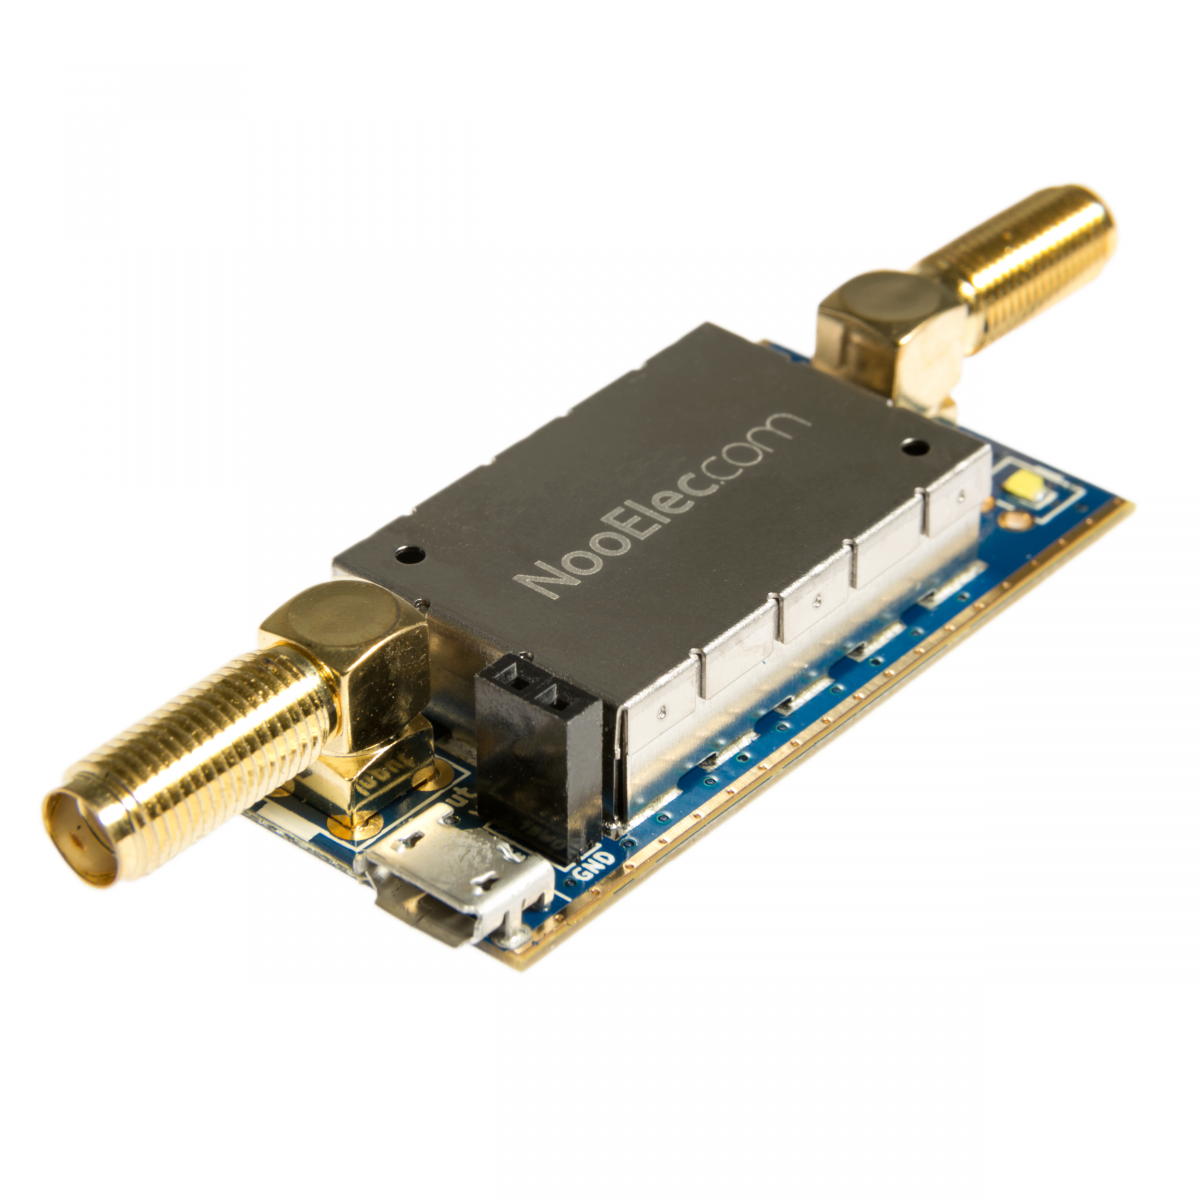 Nooelec SAWbird+ NOAA Barebones - Premium SAW Filter & Cascaded Ultra-Low  Noise LNA Module for NOAA Applications  137MHz Center Frequency